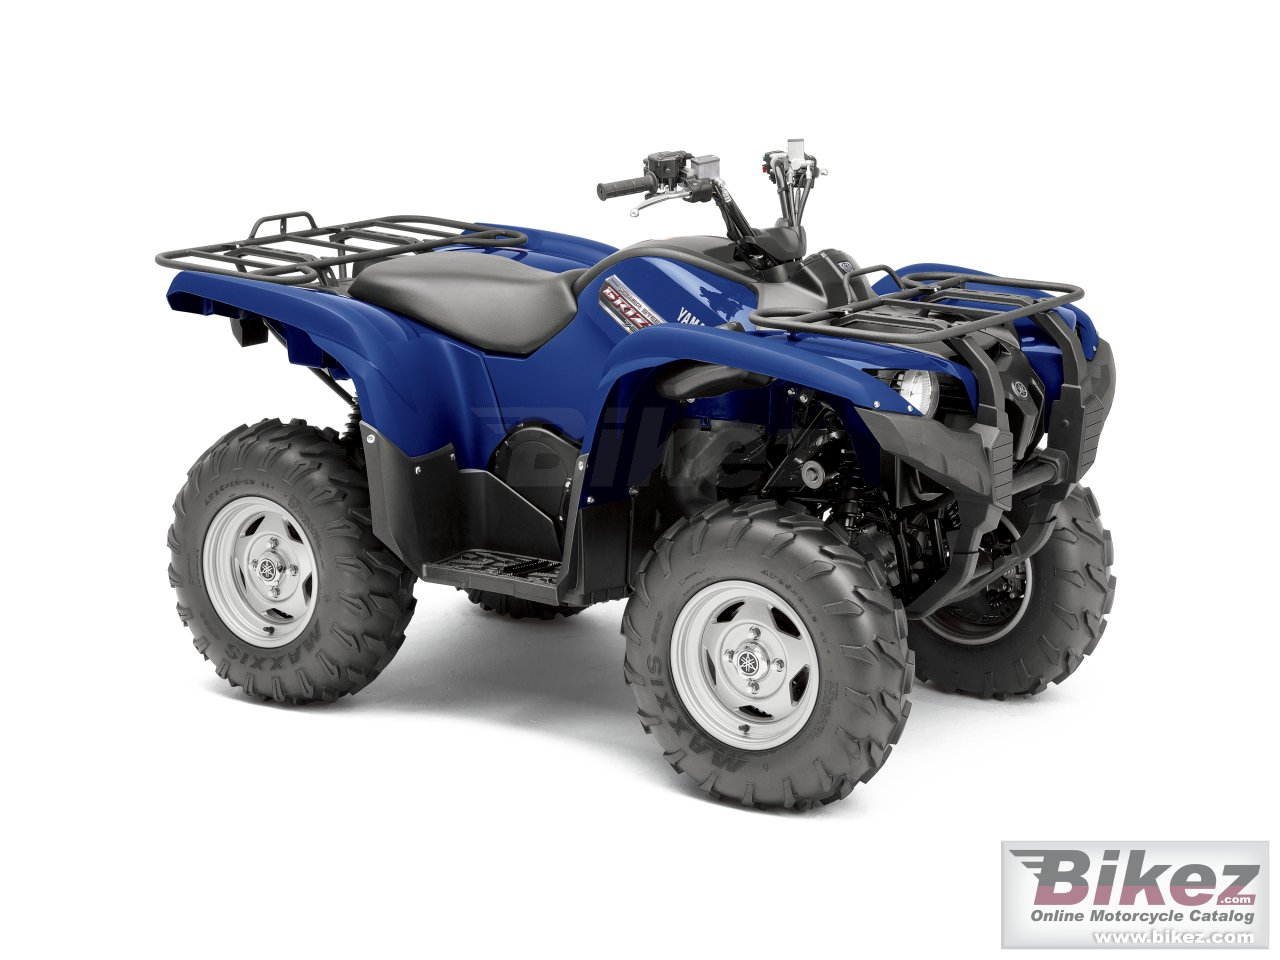 Big Yamaha grizzly 700 fi auto 4x4 eps picture and wallpaper from Bikez.com